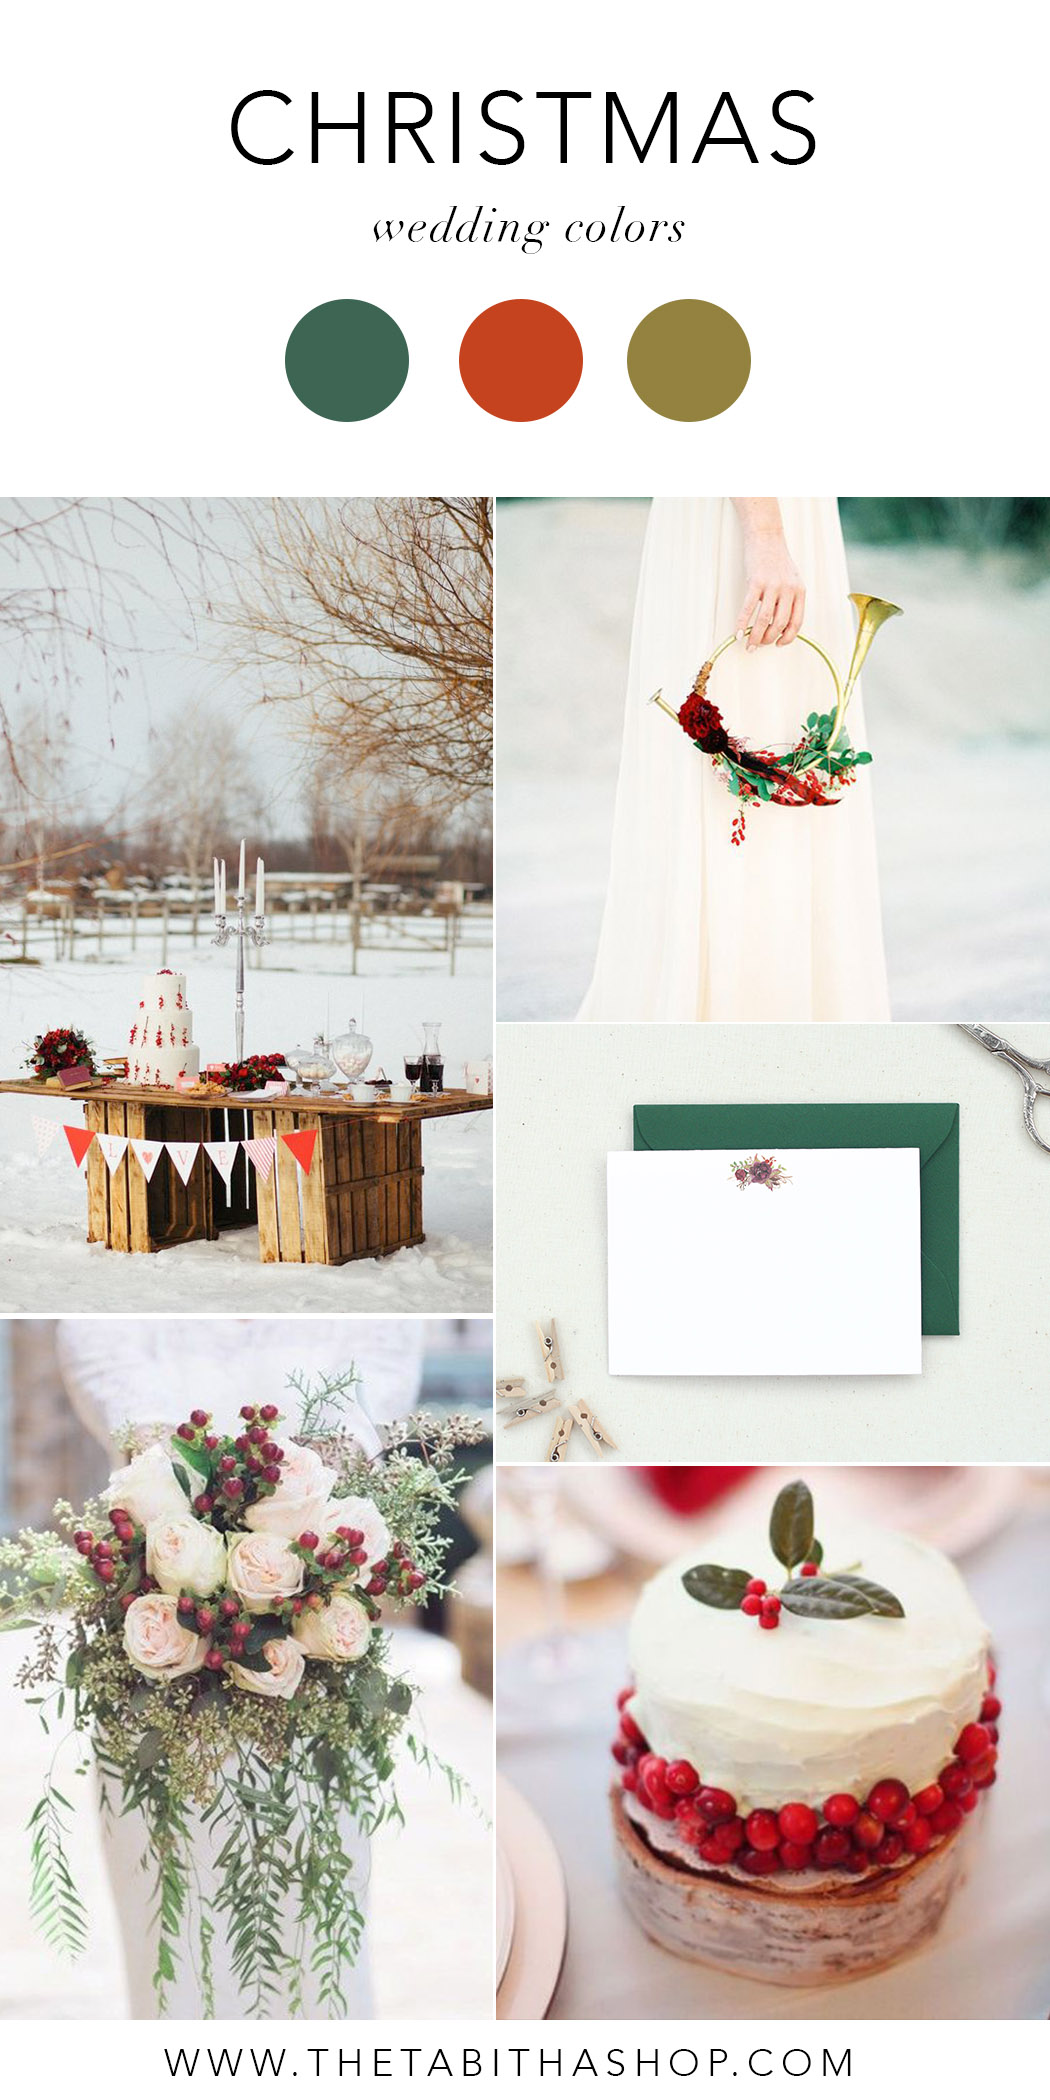 Clockwise, top left: Photo by    Esther & Gabe    via    Chic Vintage Brides    // photo via    Magnolia Rouge    //    Stationery Set    by    The Tabitha Shop    // photo via    Happy Wedd    // Photo by    Sarah Sidwell Photography    via    boho-weddings.com